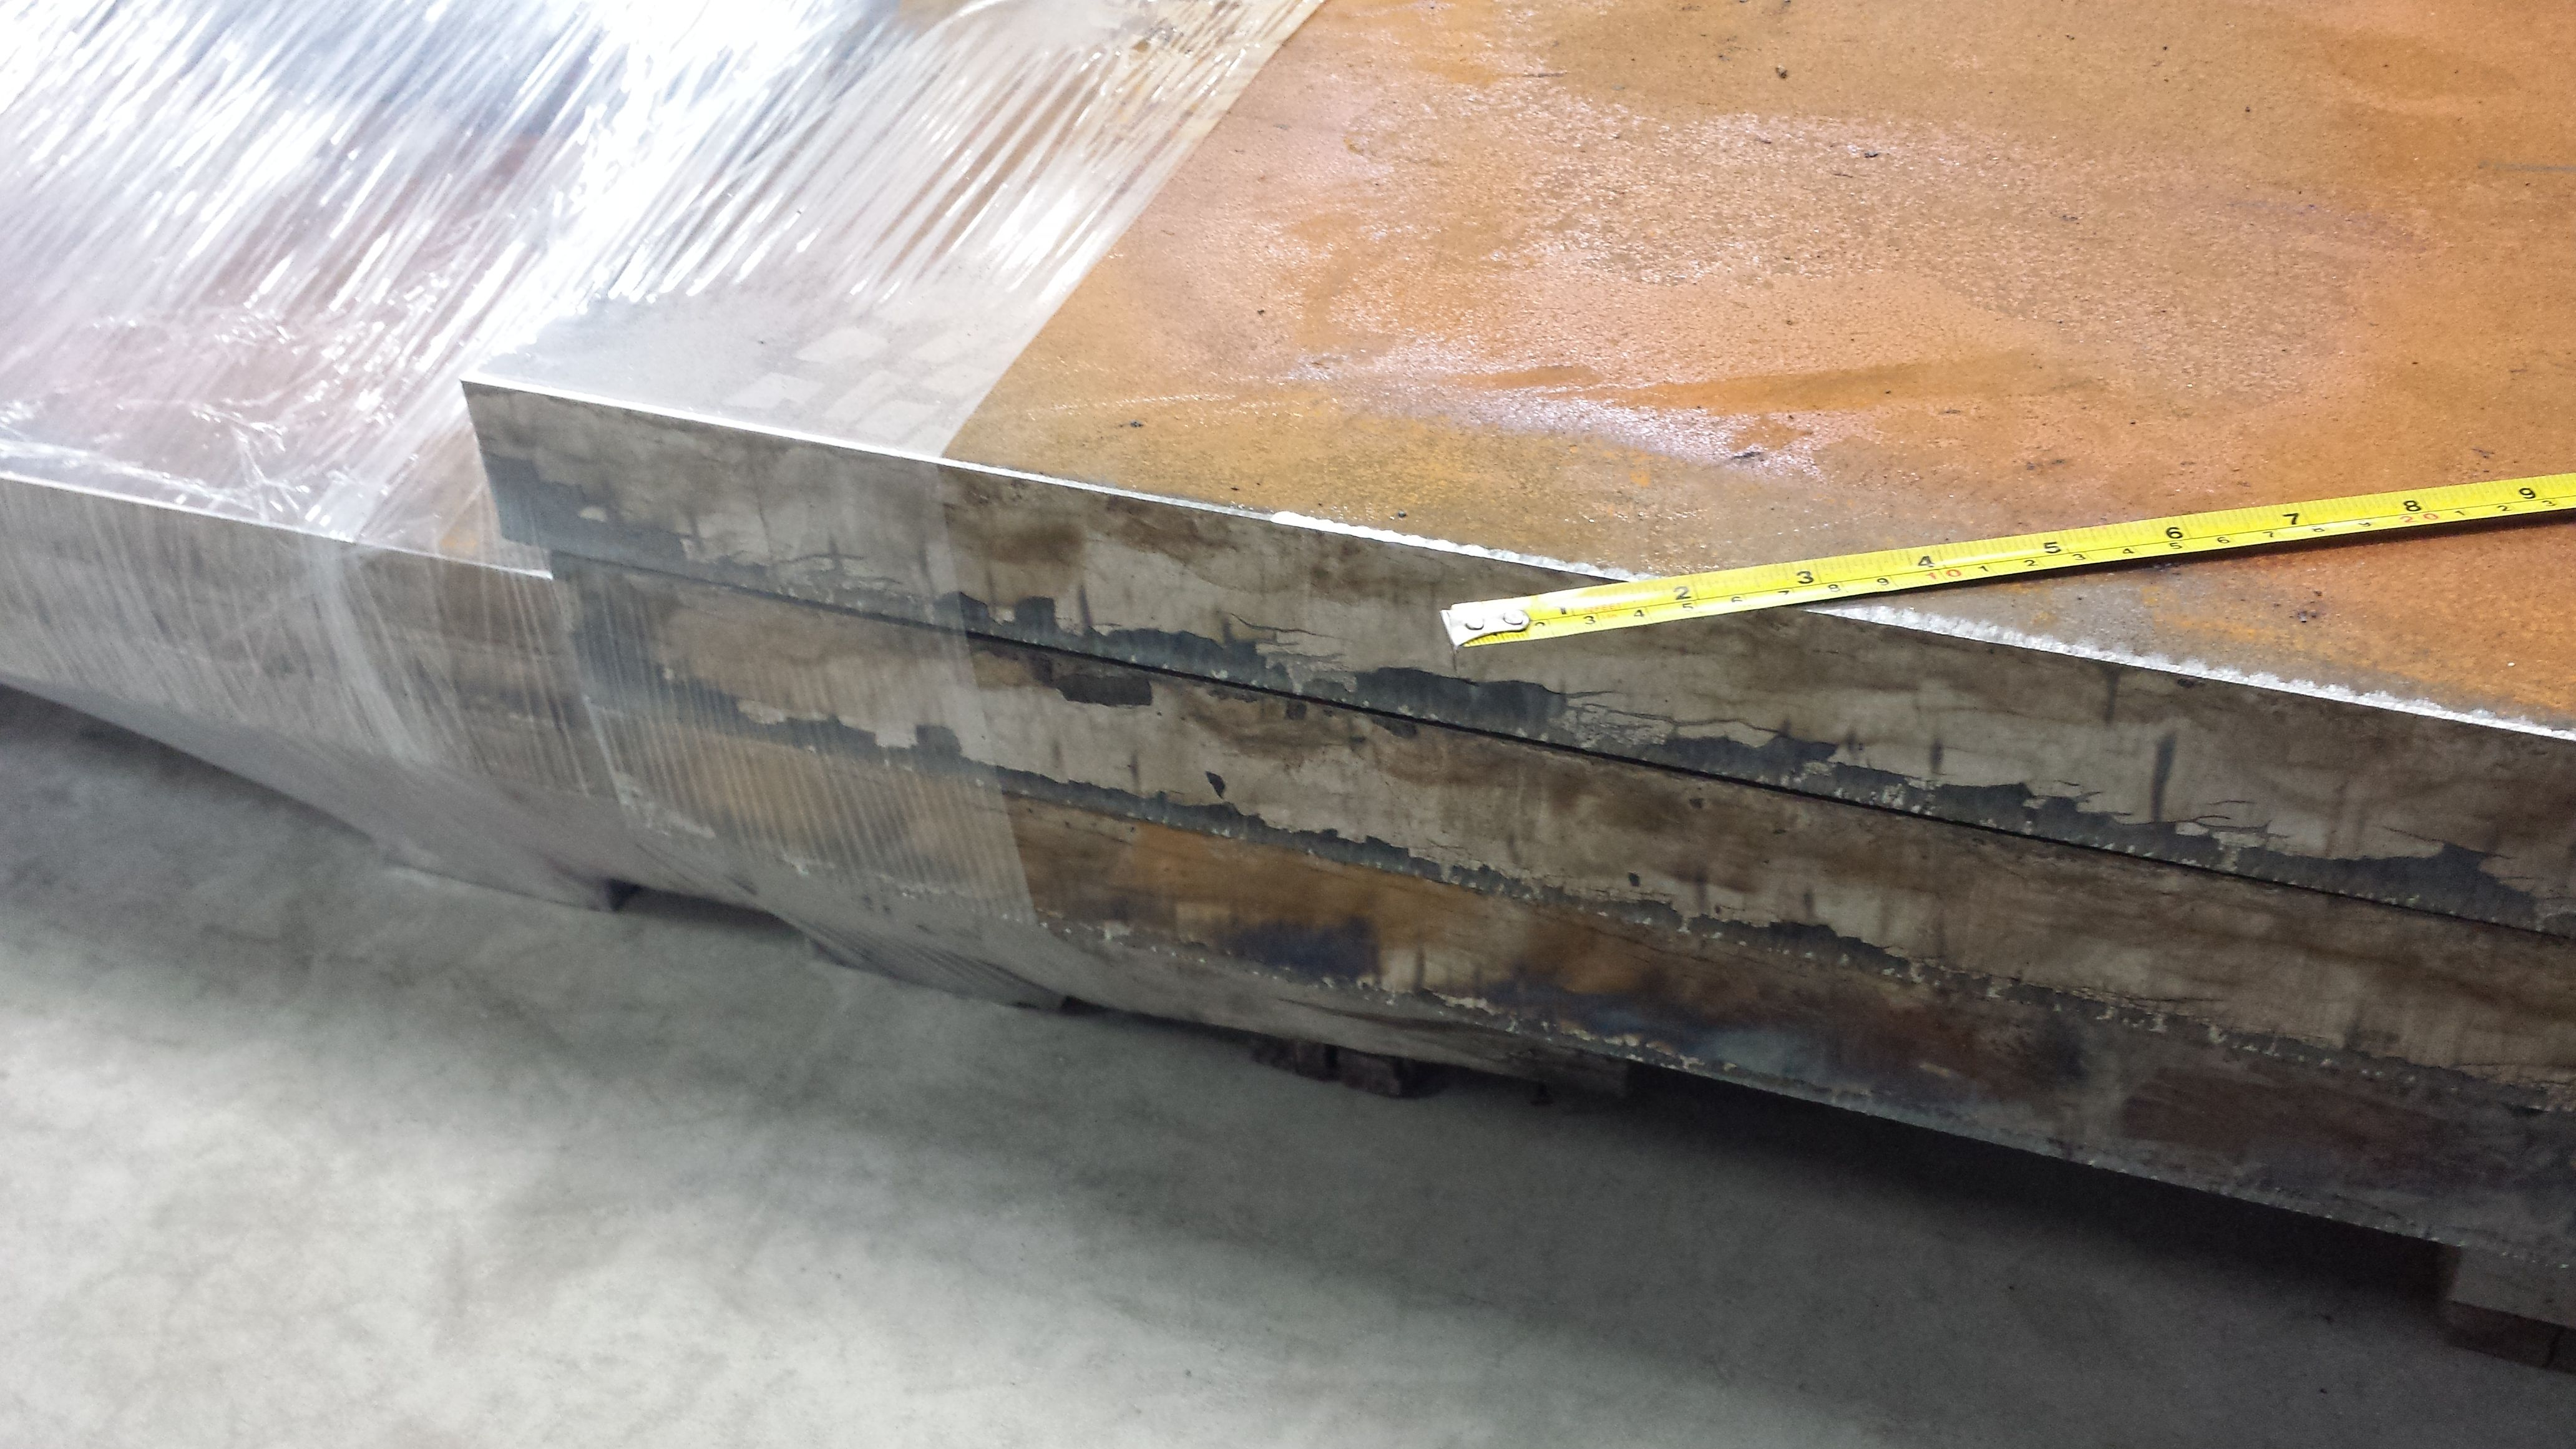 2 Inch Thick Steel Plate No Problem Here At Baileigh Industrial We Laugh At Such Applications When Most Companies In The Indu Steel Plate Industrial Steel